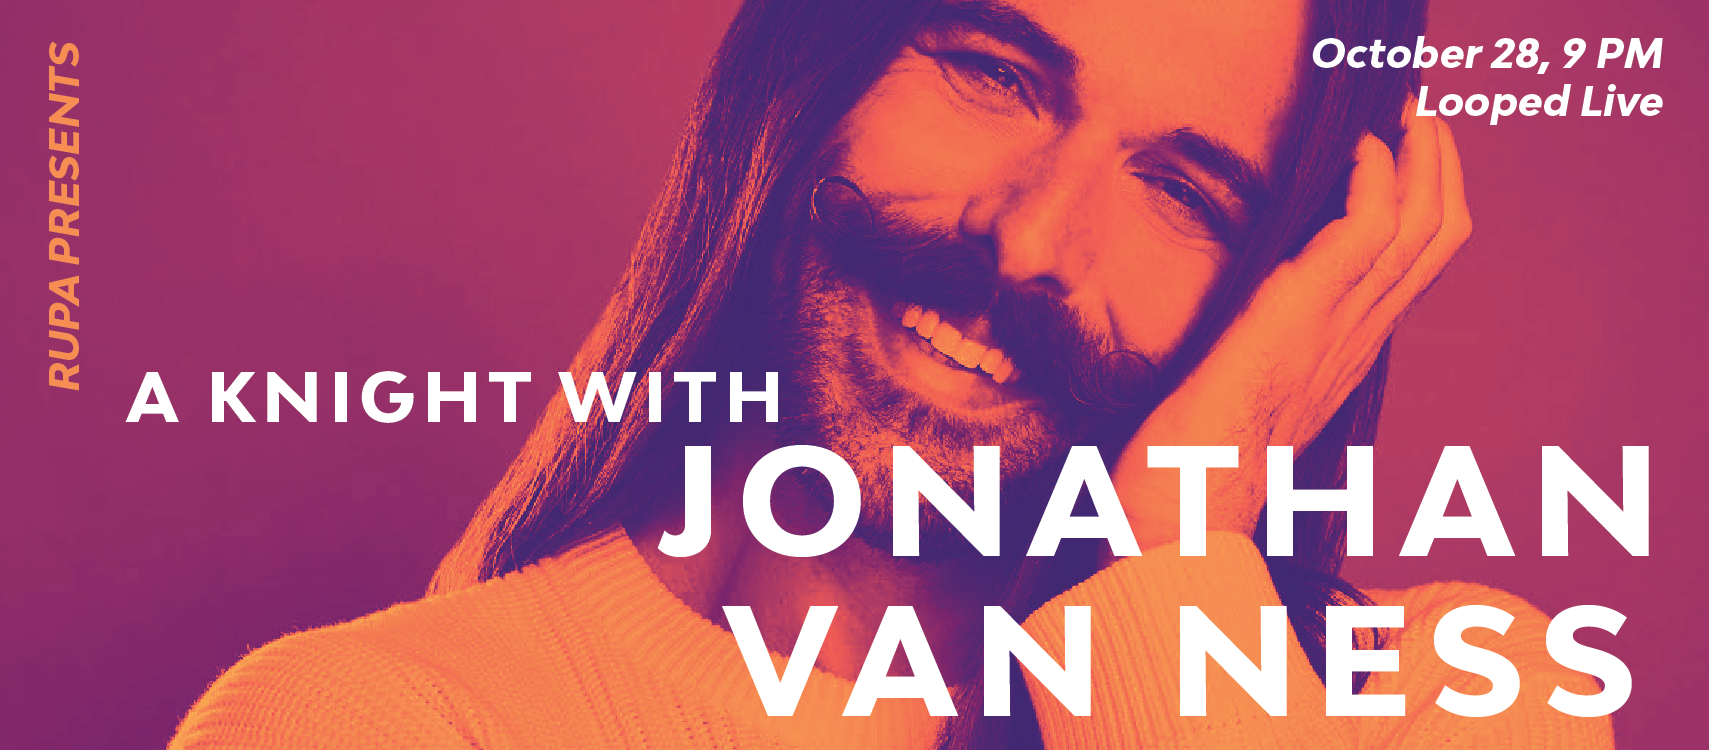 A Knight With Jonathan Van Ness Flyer